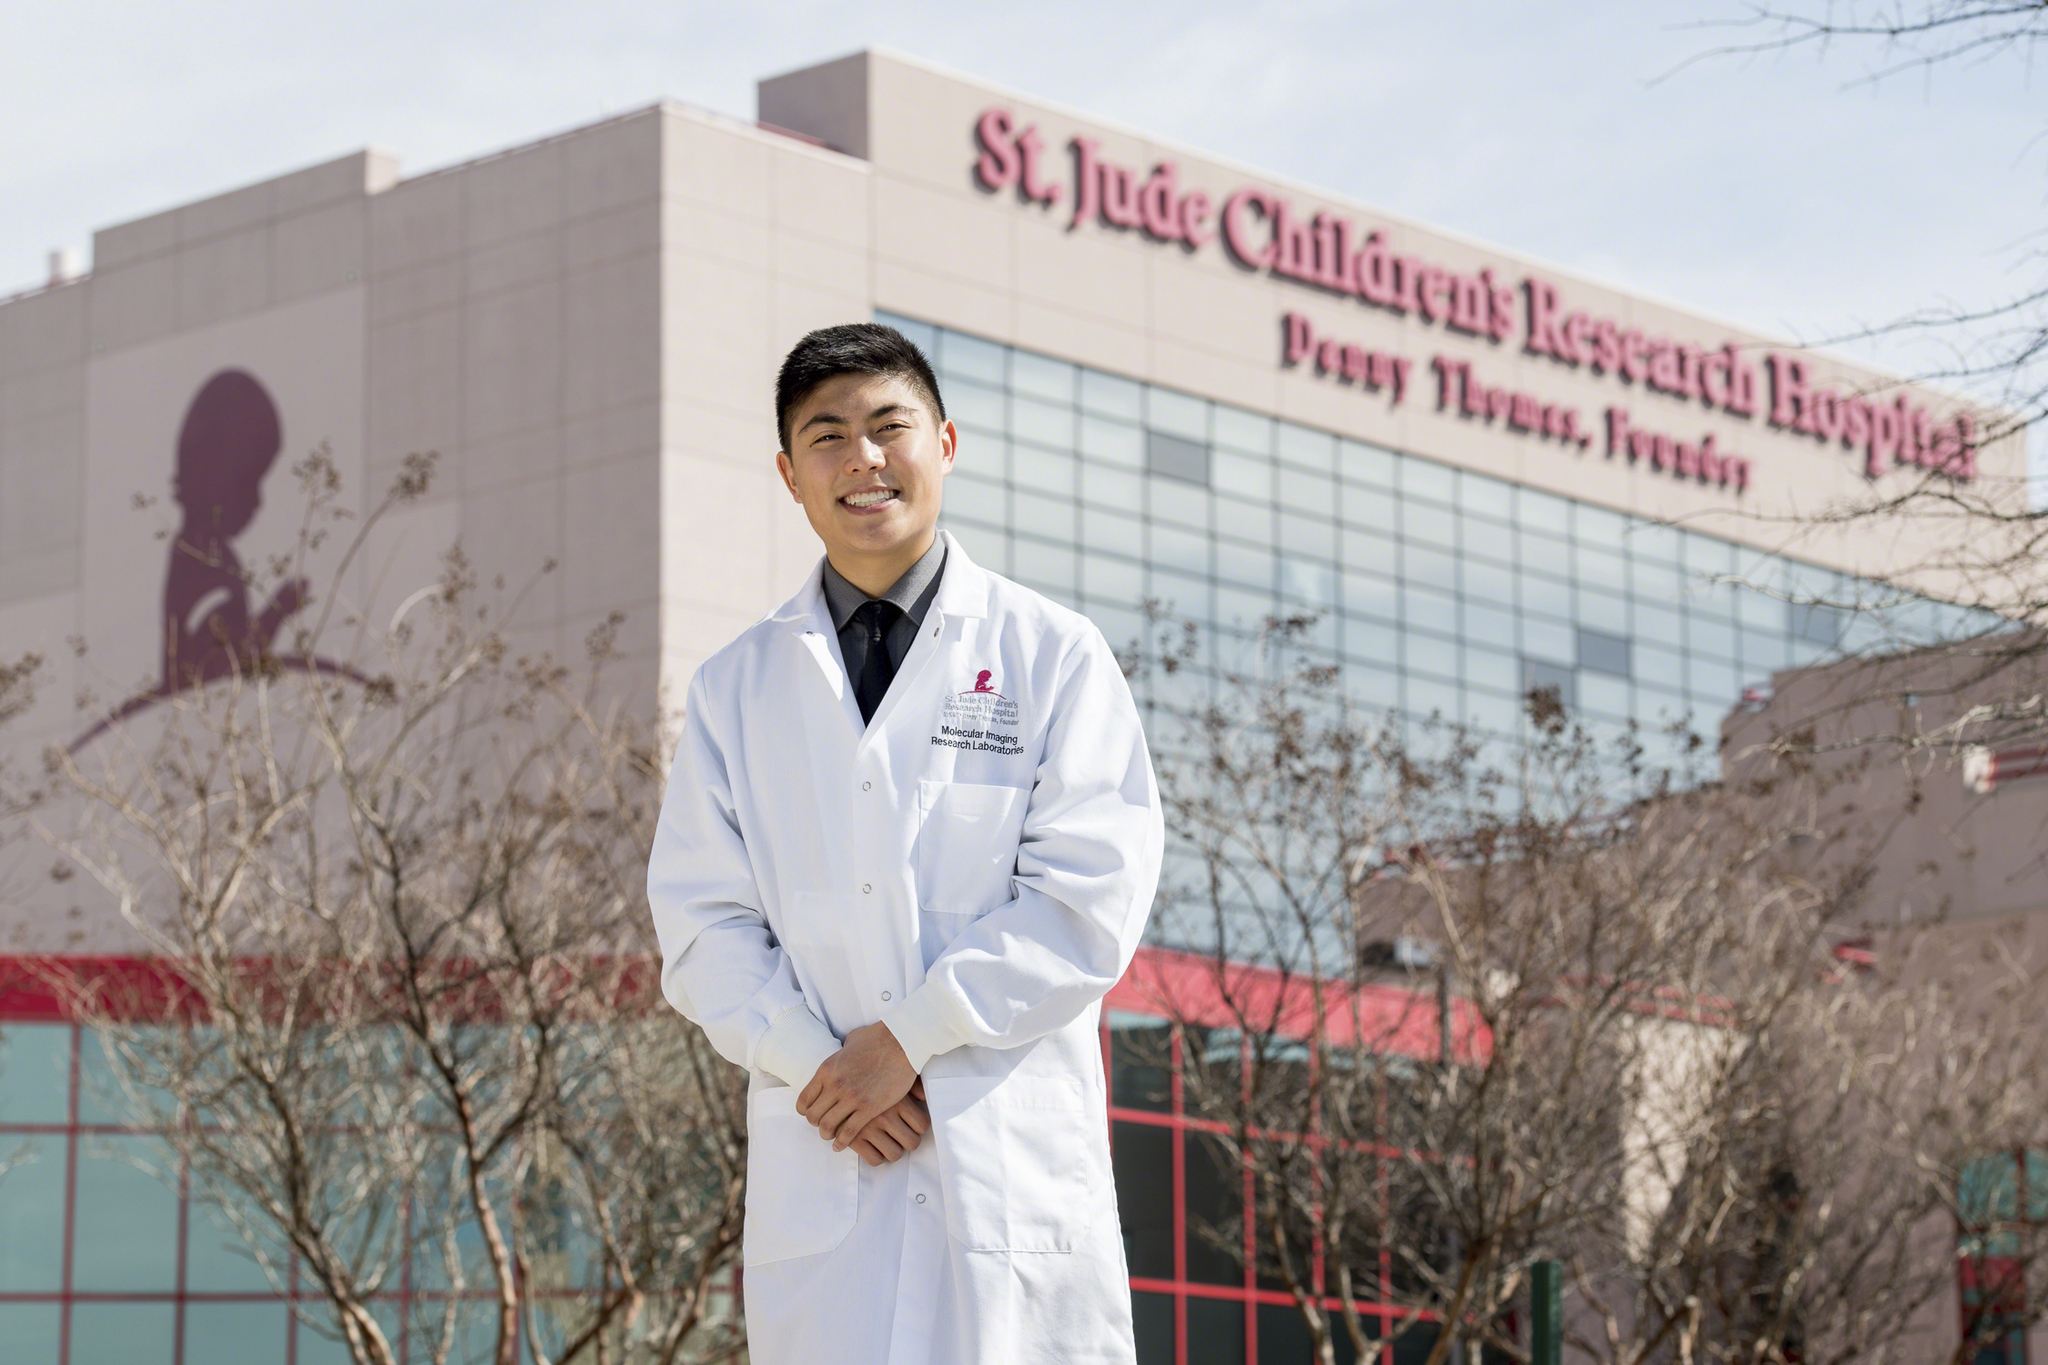 A young man in a white coat stands outside St. Jude Children's Research Hospital.